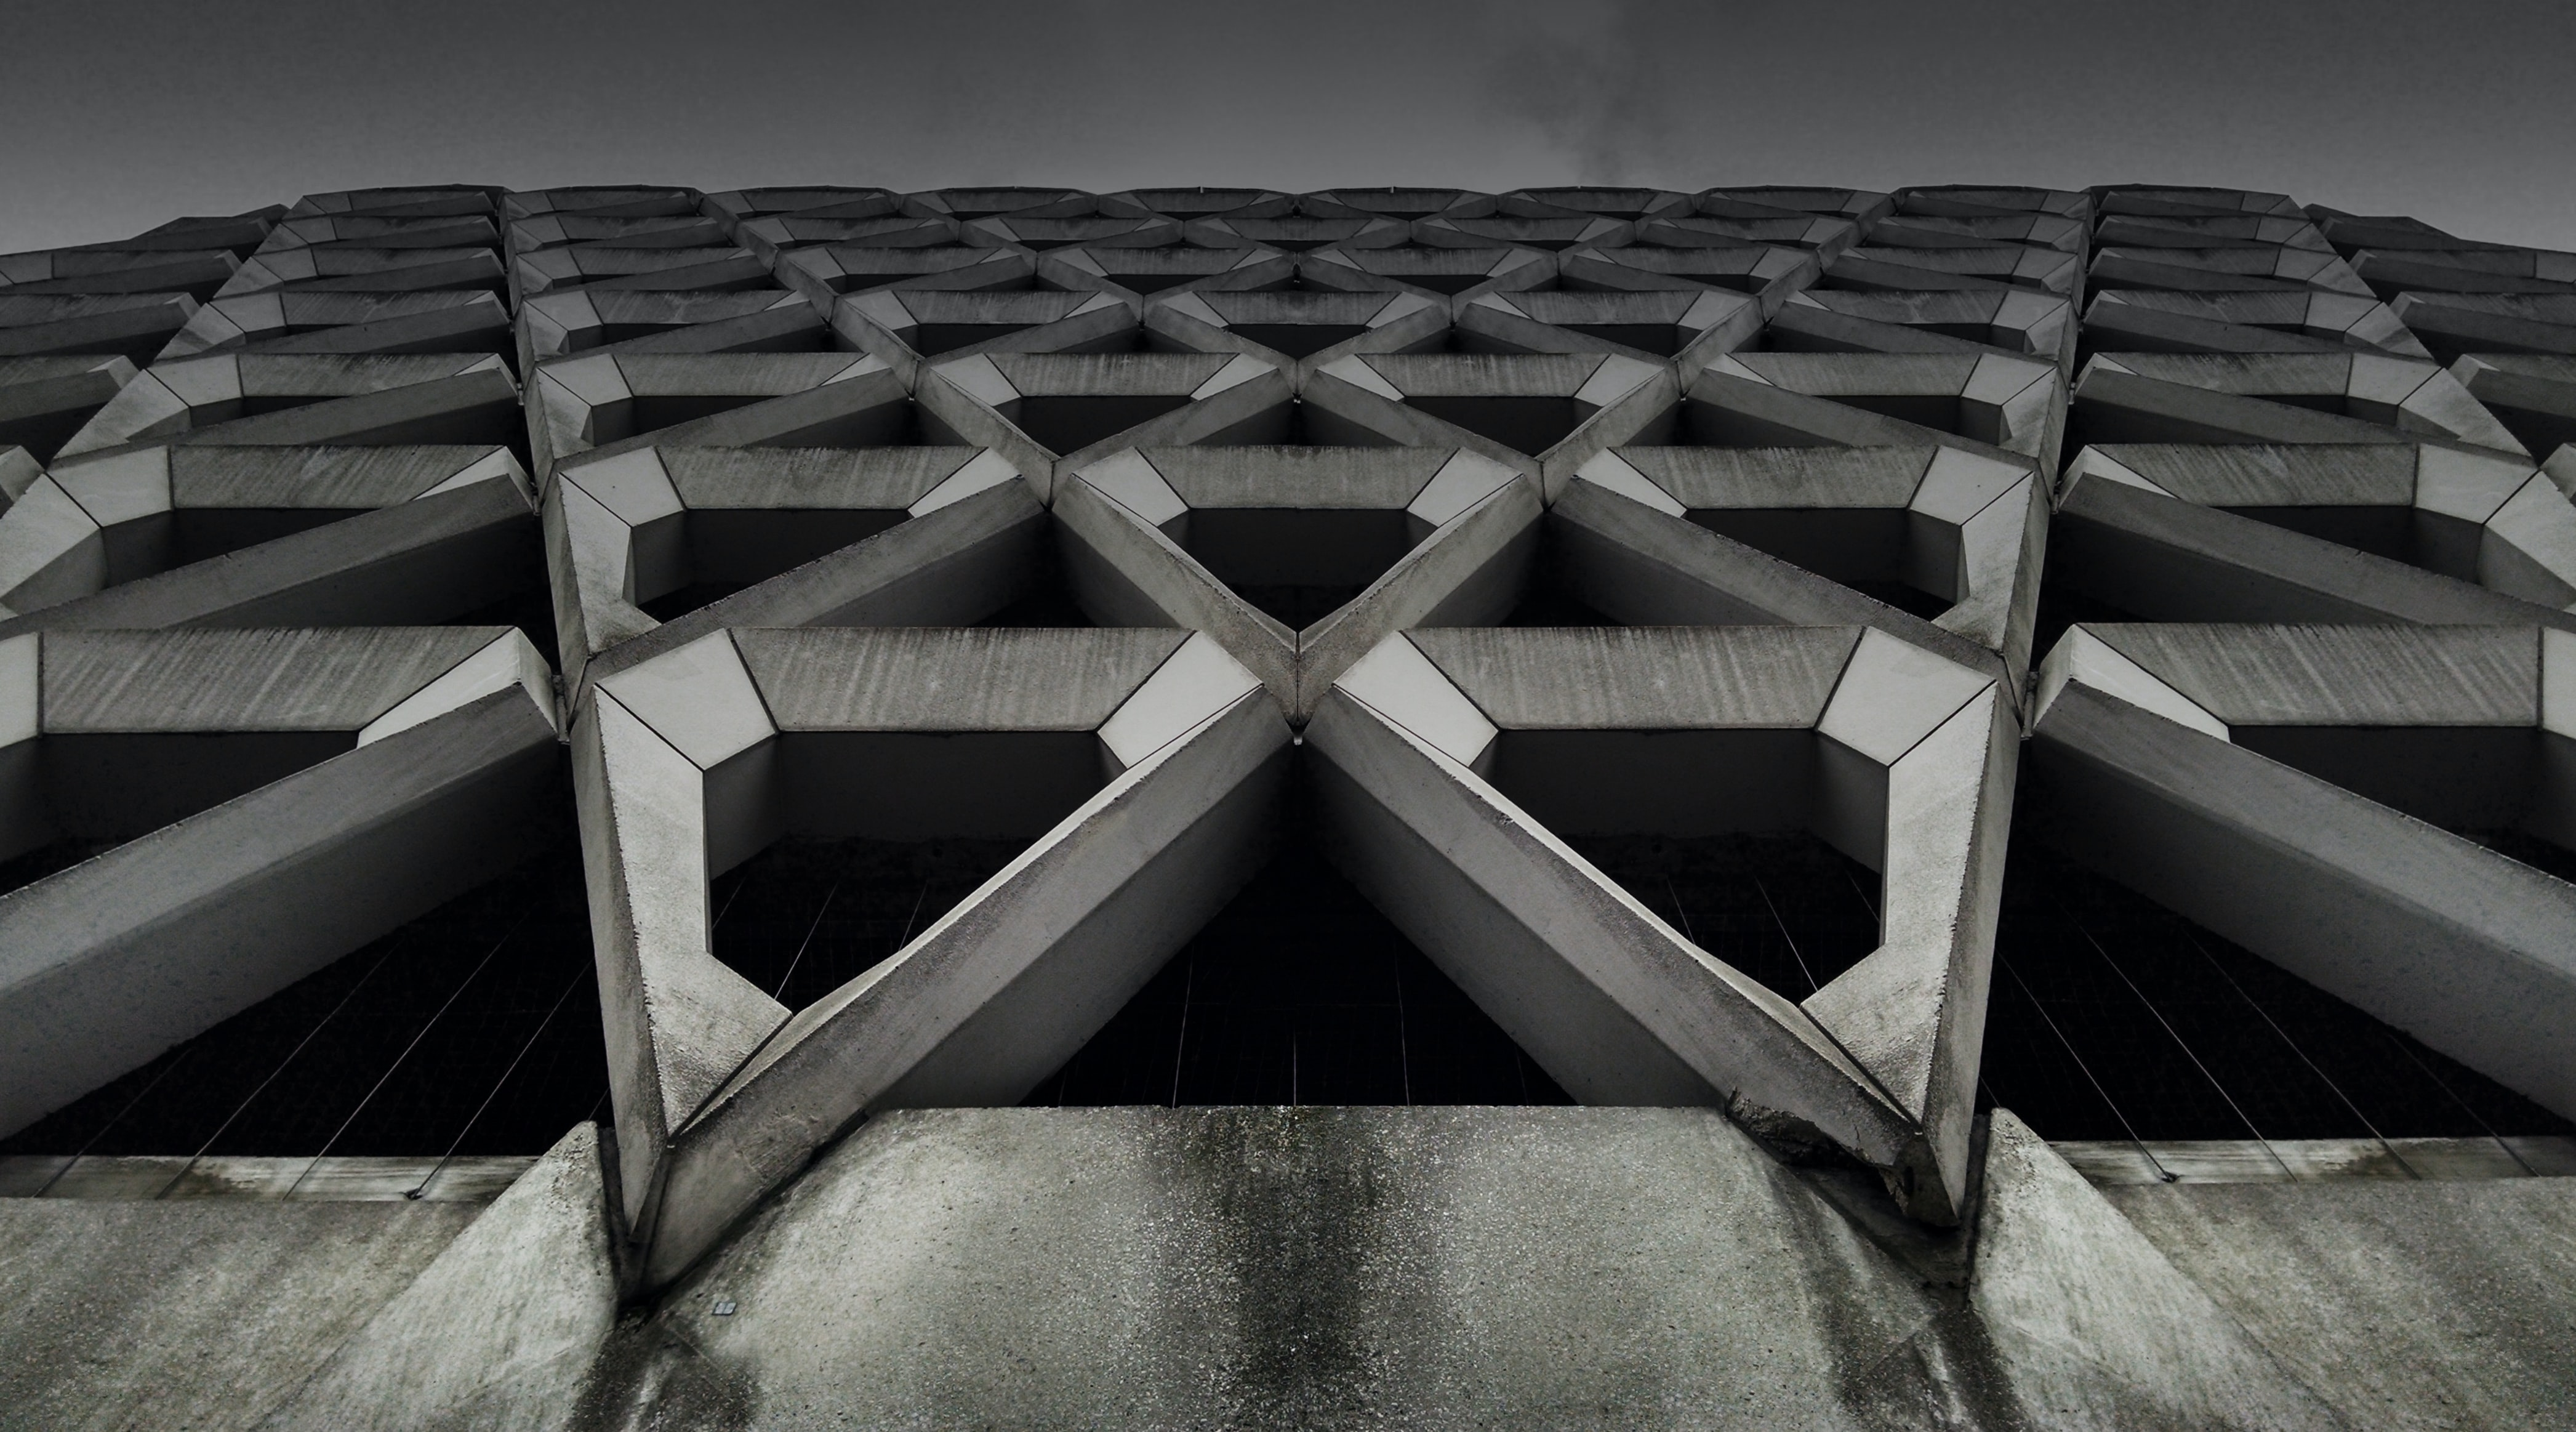 gray concrete building low-angle photography